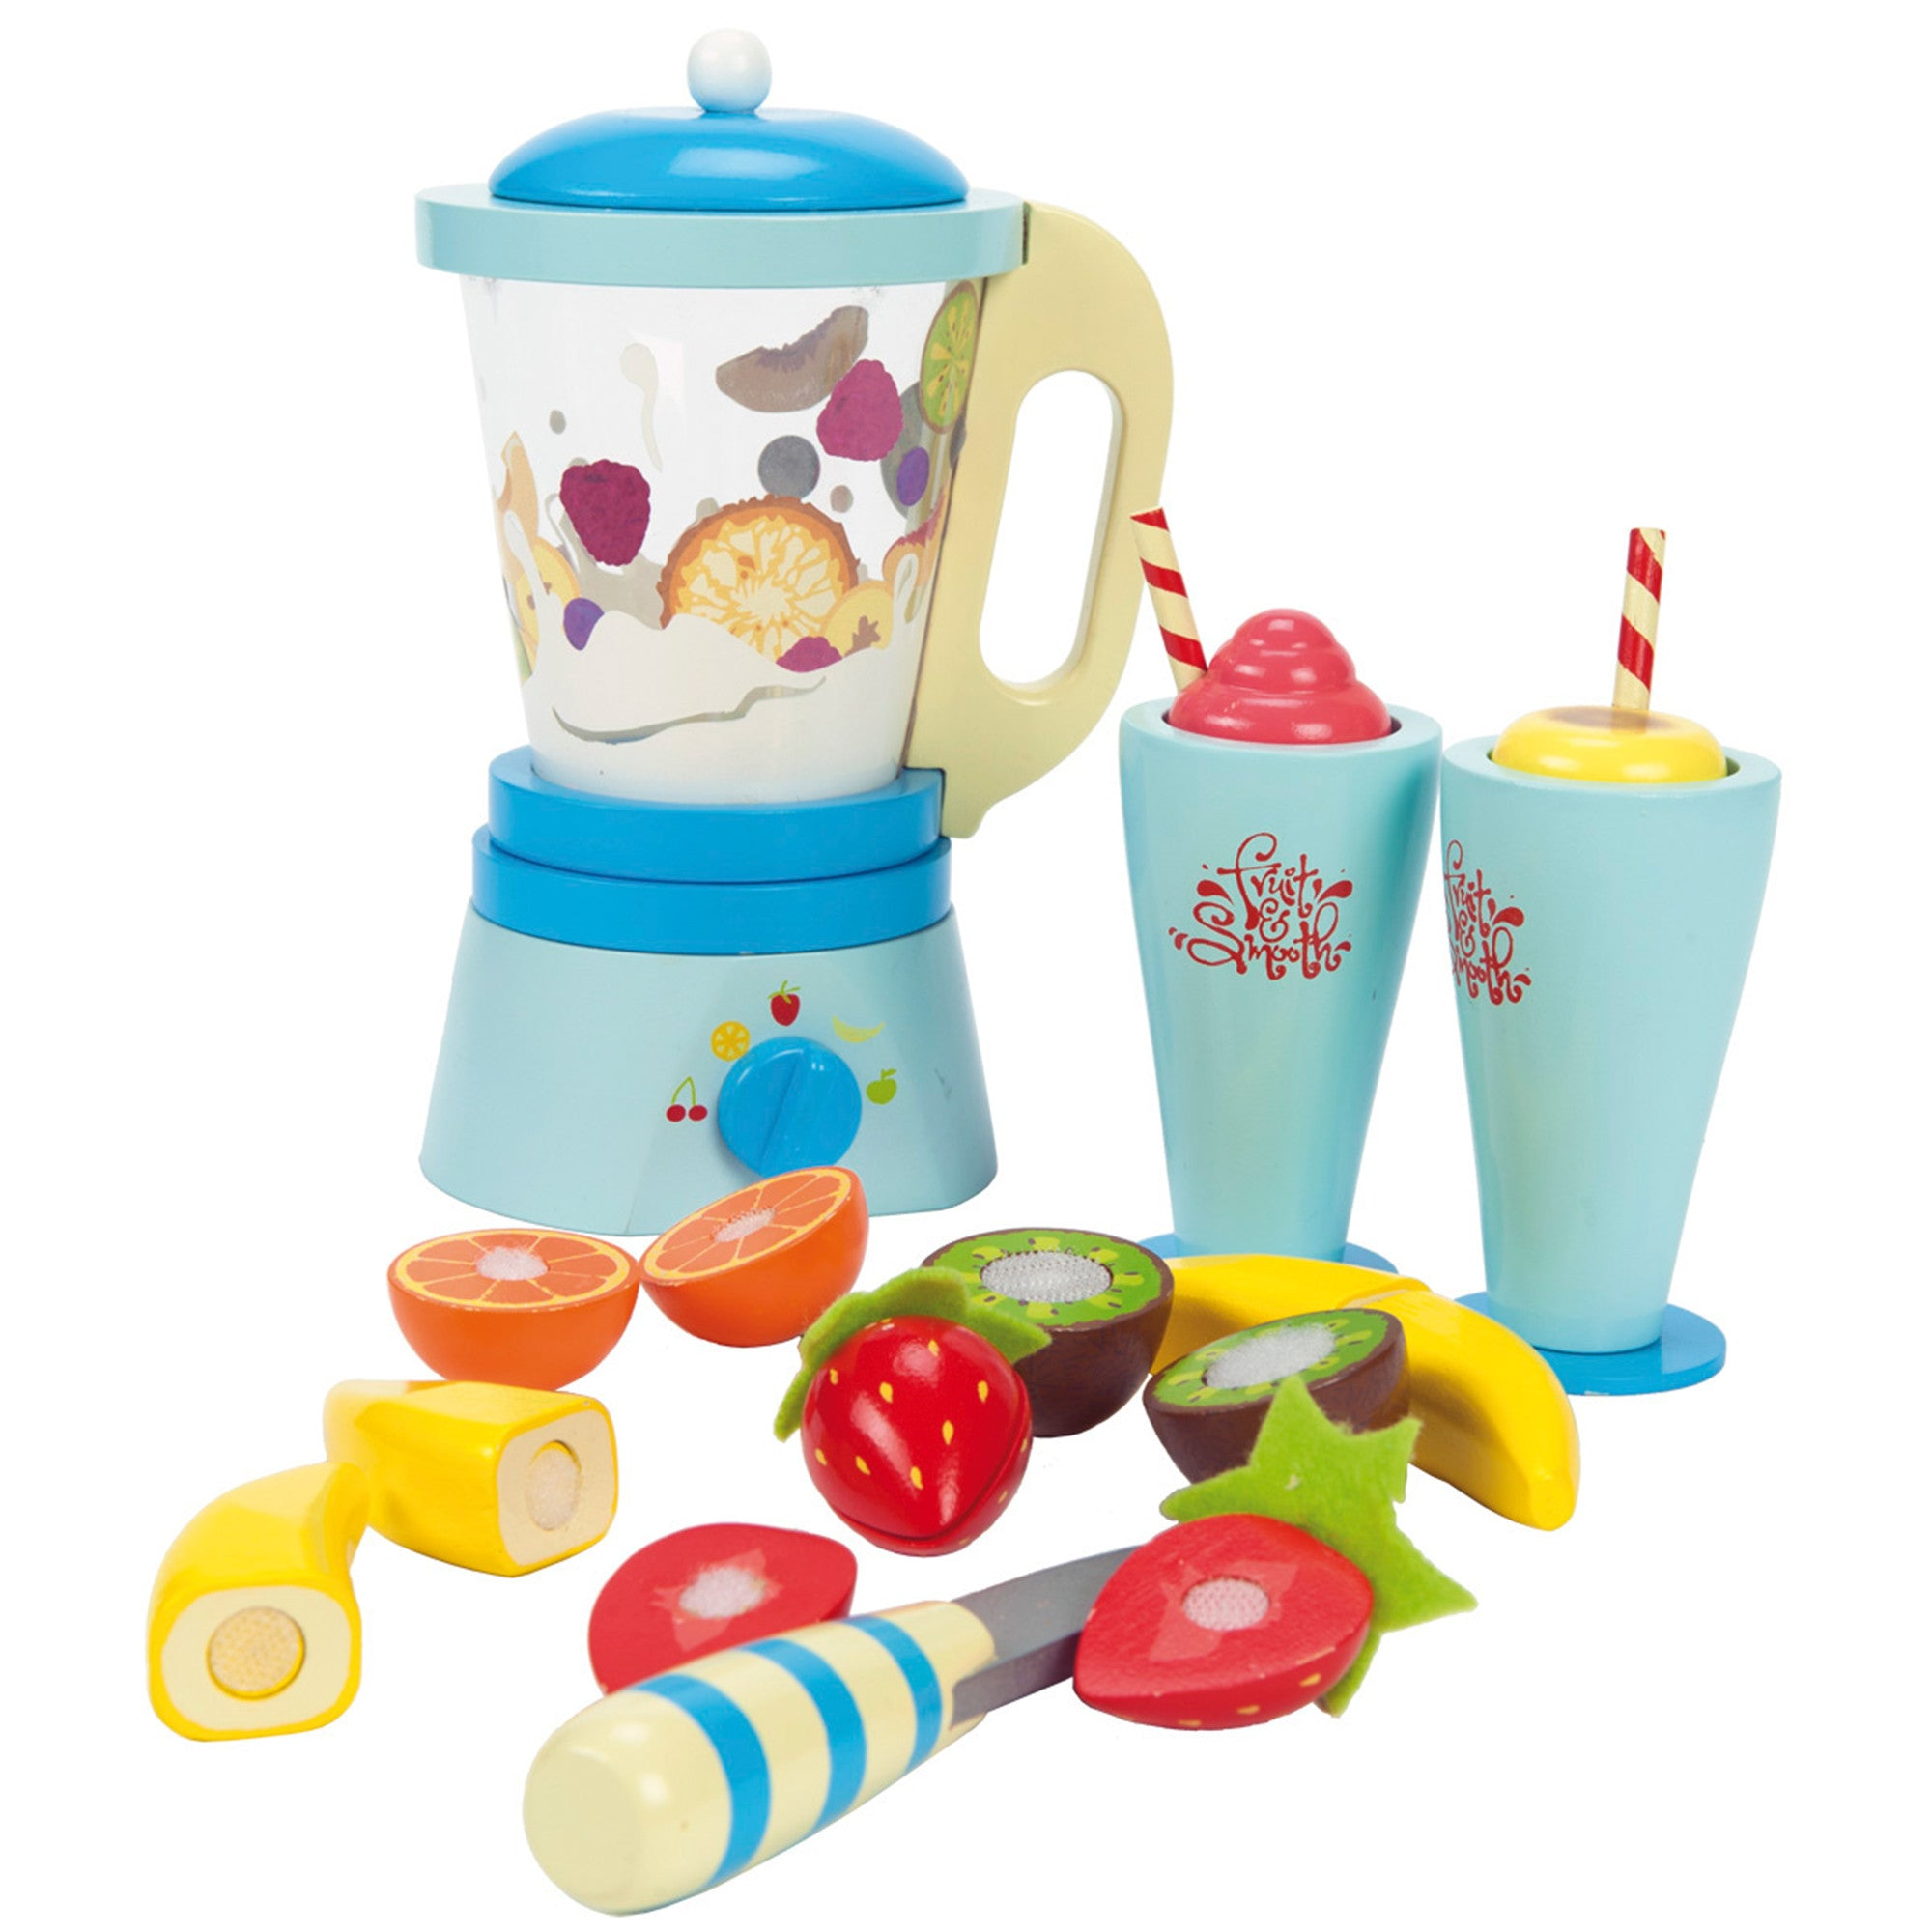 Le Toy Van Fruit and Smooth Blender Set Le Toy Van Toy Kitchens & Play Food at Little Earth Nest Eco Shop